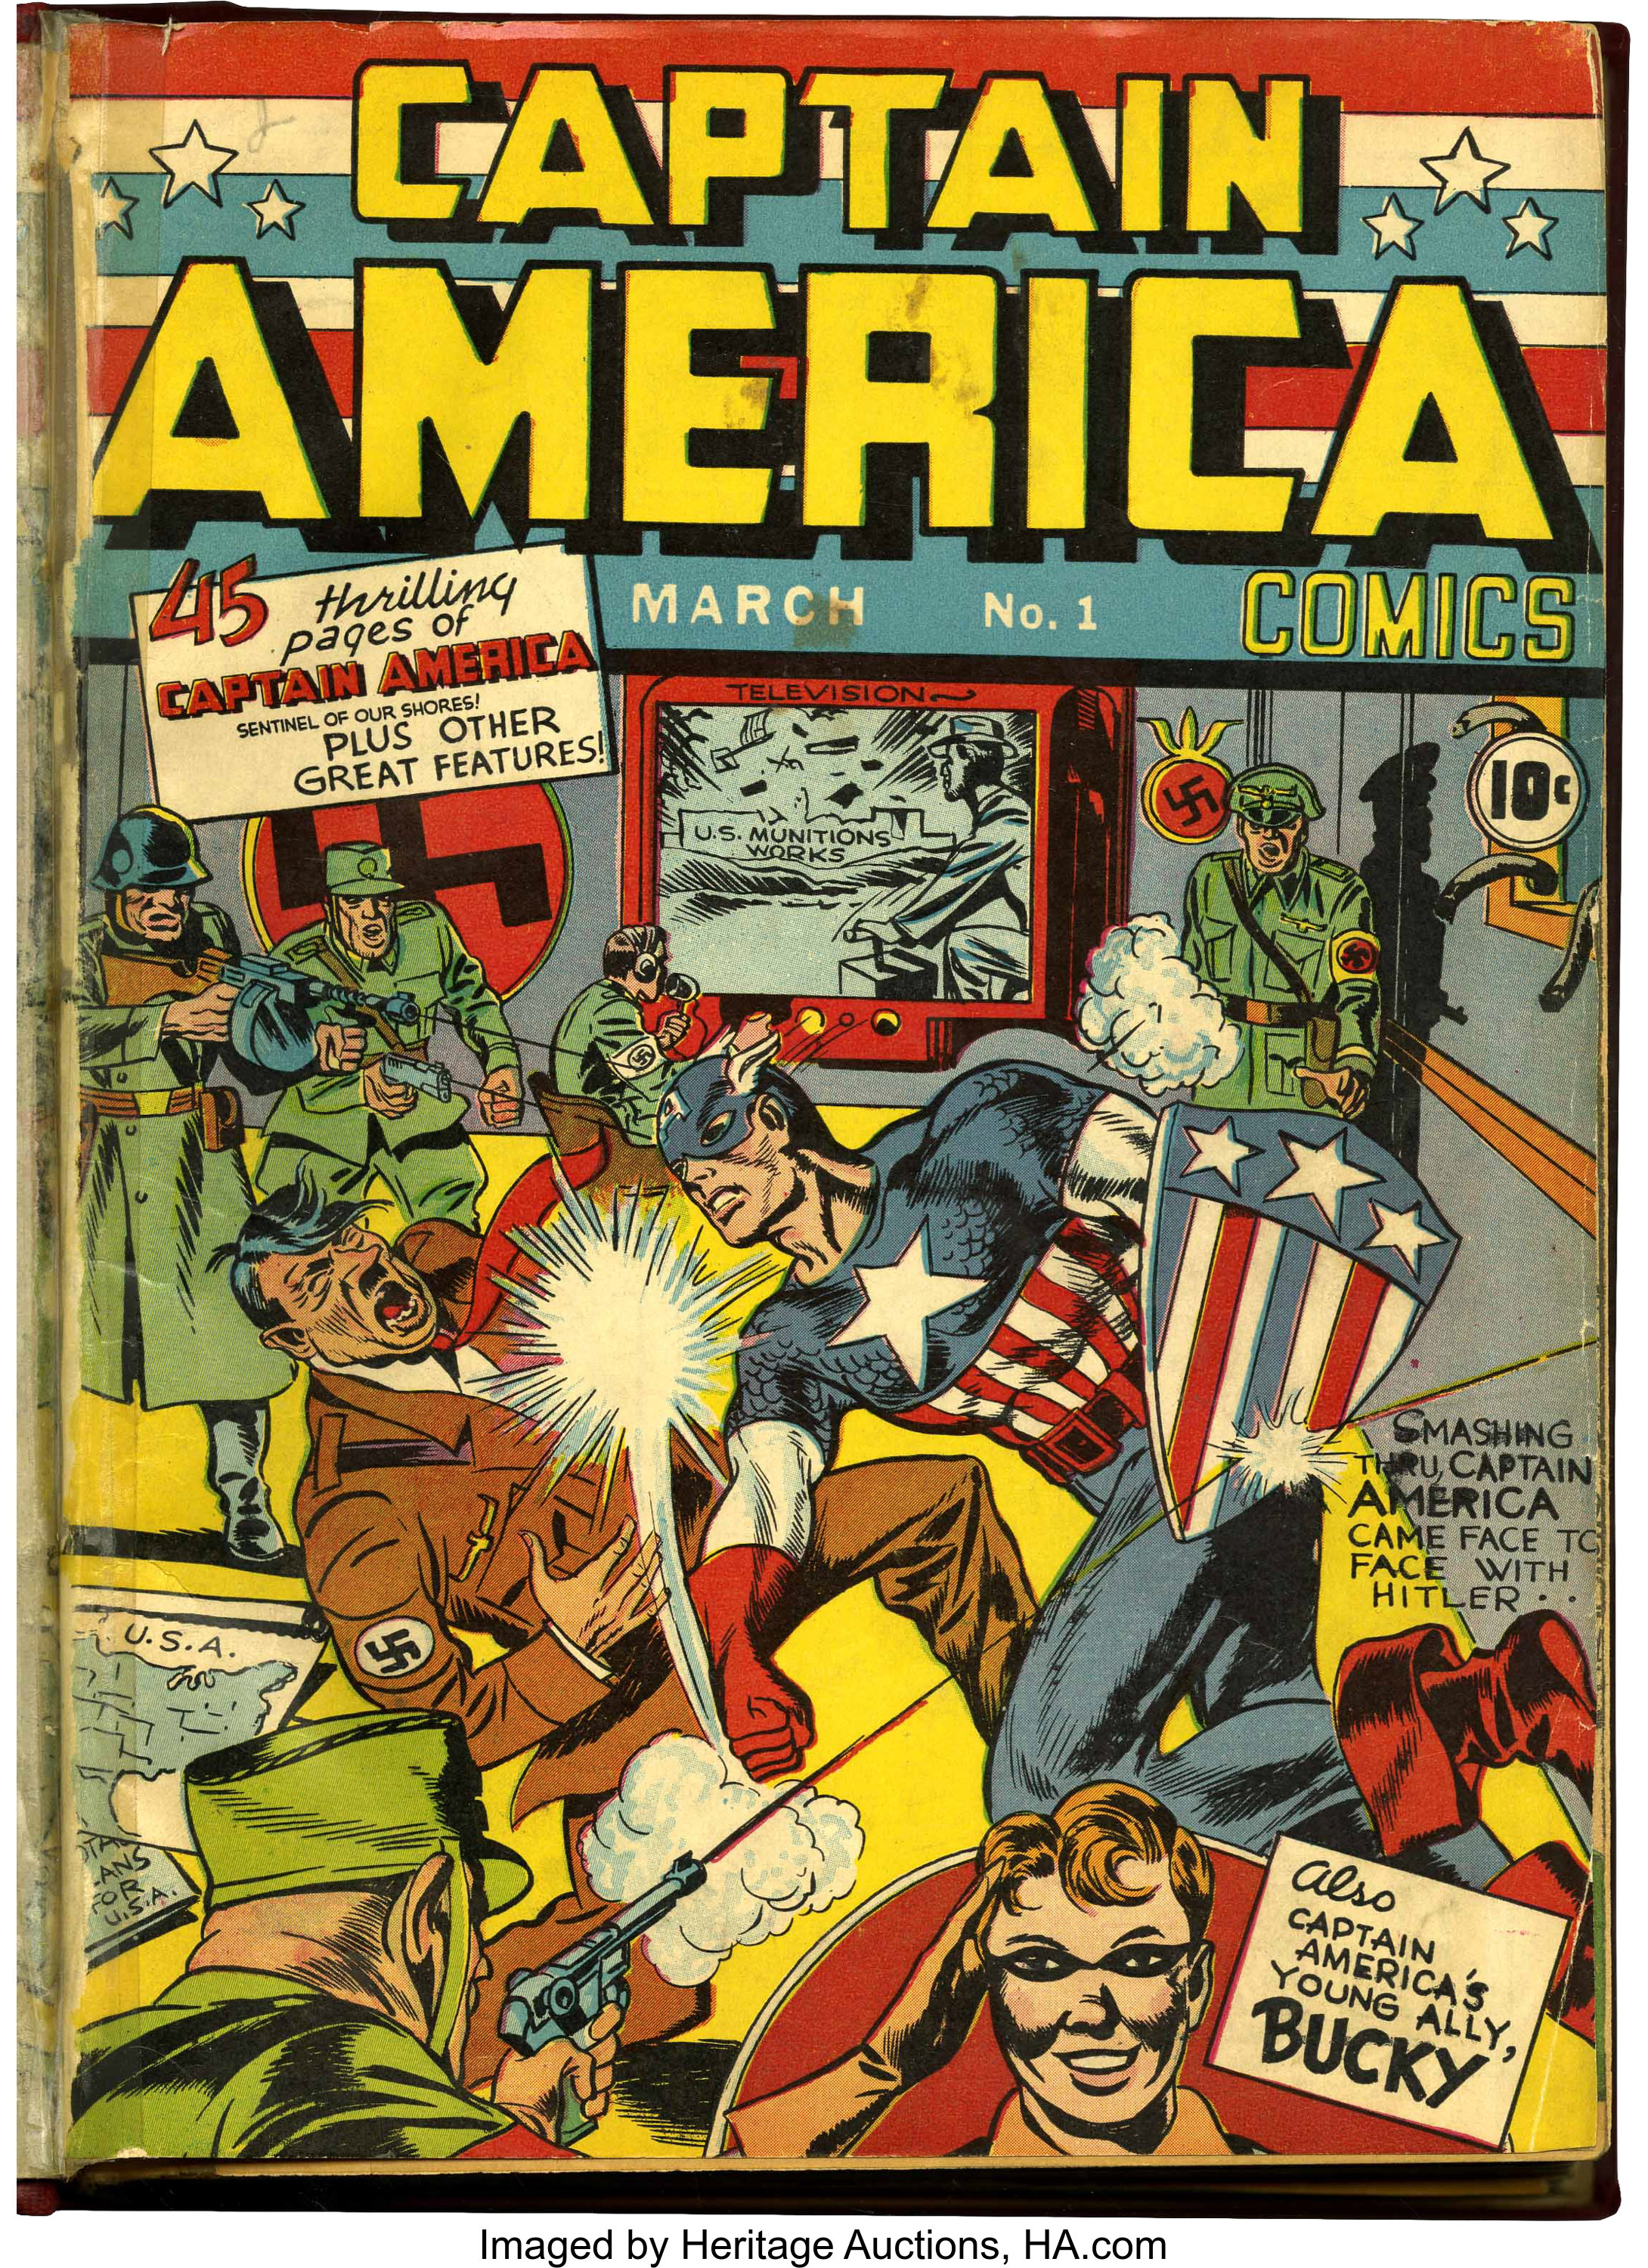 Captain America Comics 1 And 3 10 And More Bound Volume With Lot 91078 Heritage Auctions